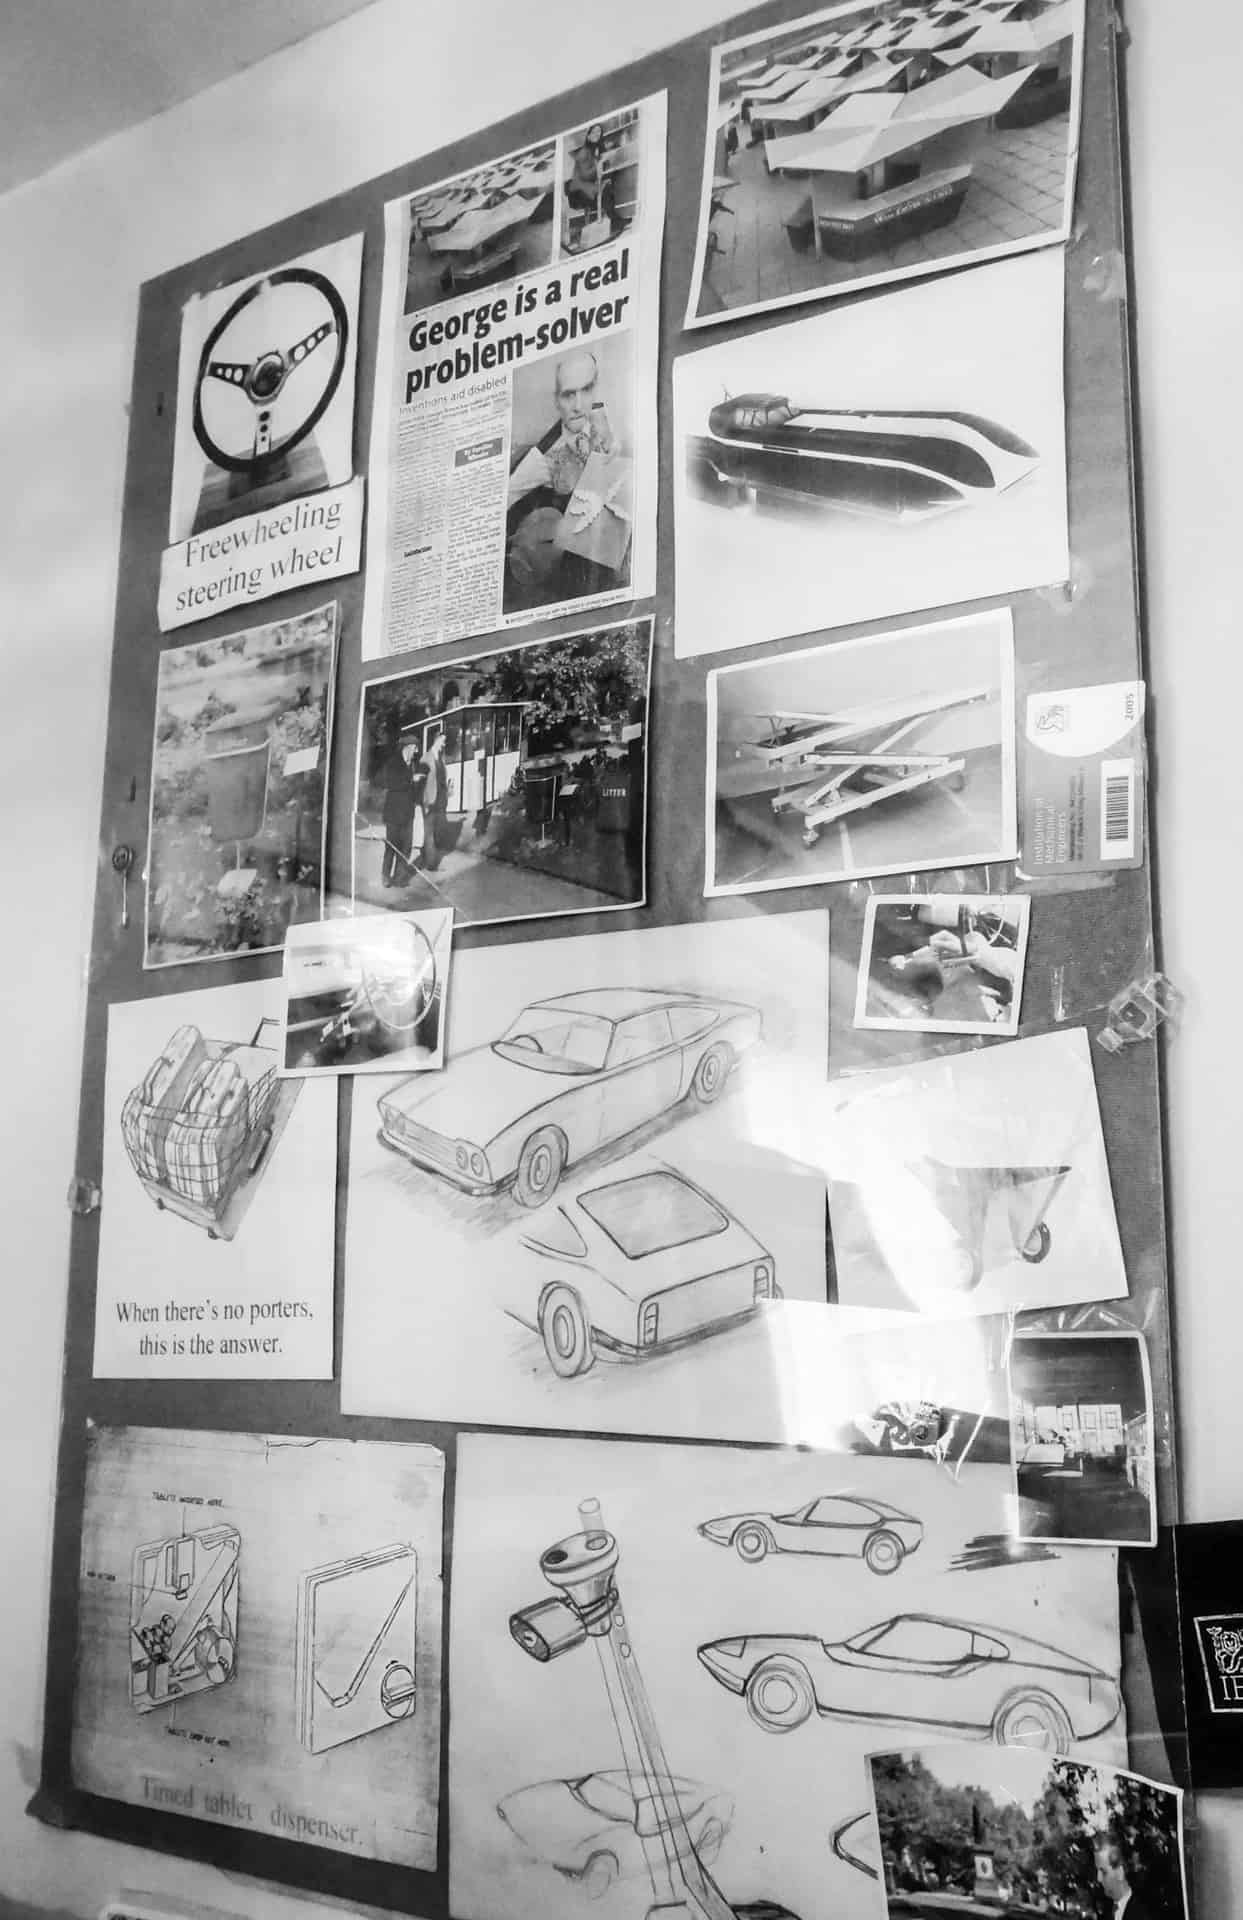 Display showing George's designs and drawings